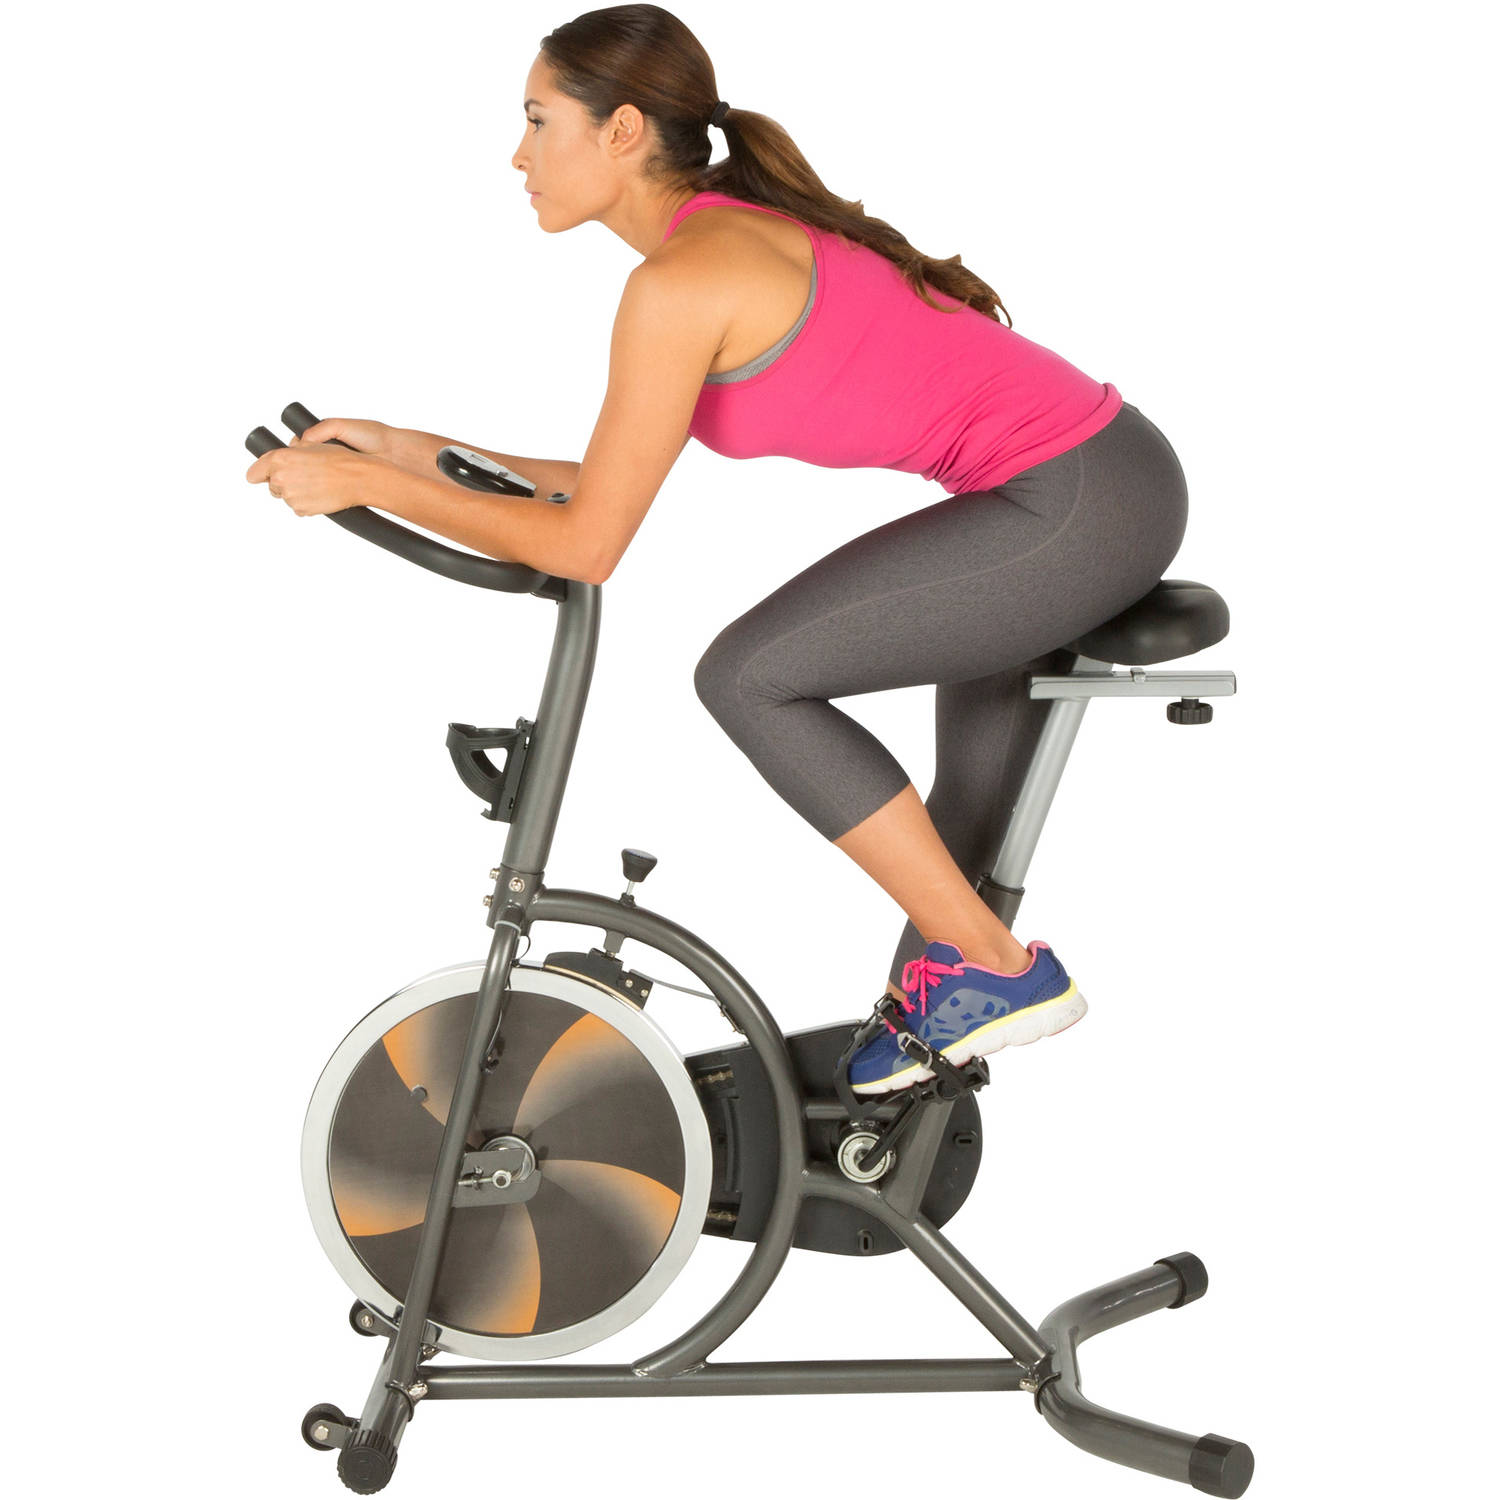 Fitness Reality S275 Exercise Bike/Indoor Training Cycle with 4-Way Adjustable Seat